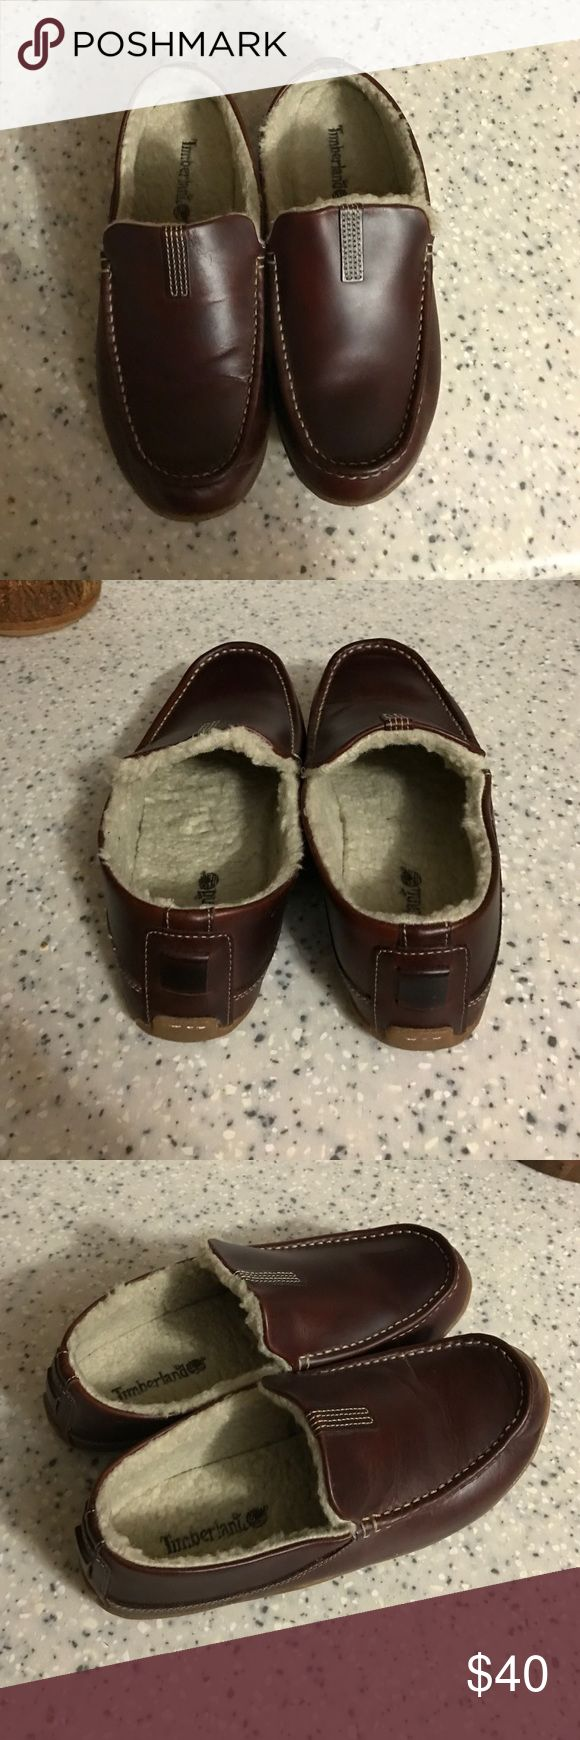 New Timberland casual winter dress shoes Brand new Timberland dress shoes Timberland Shoes Loafers & Slip-Ons